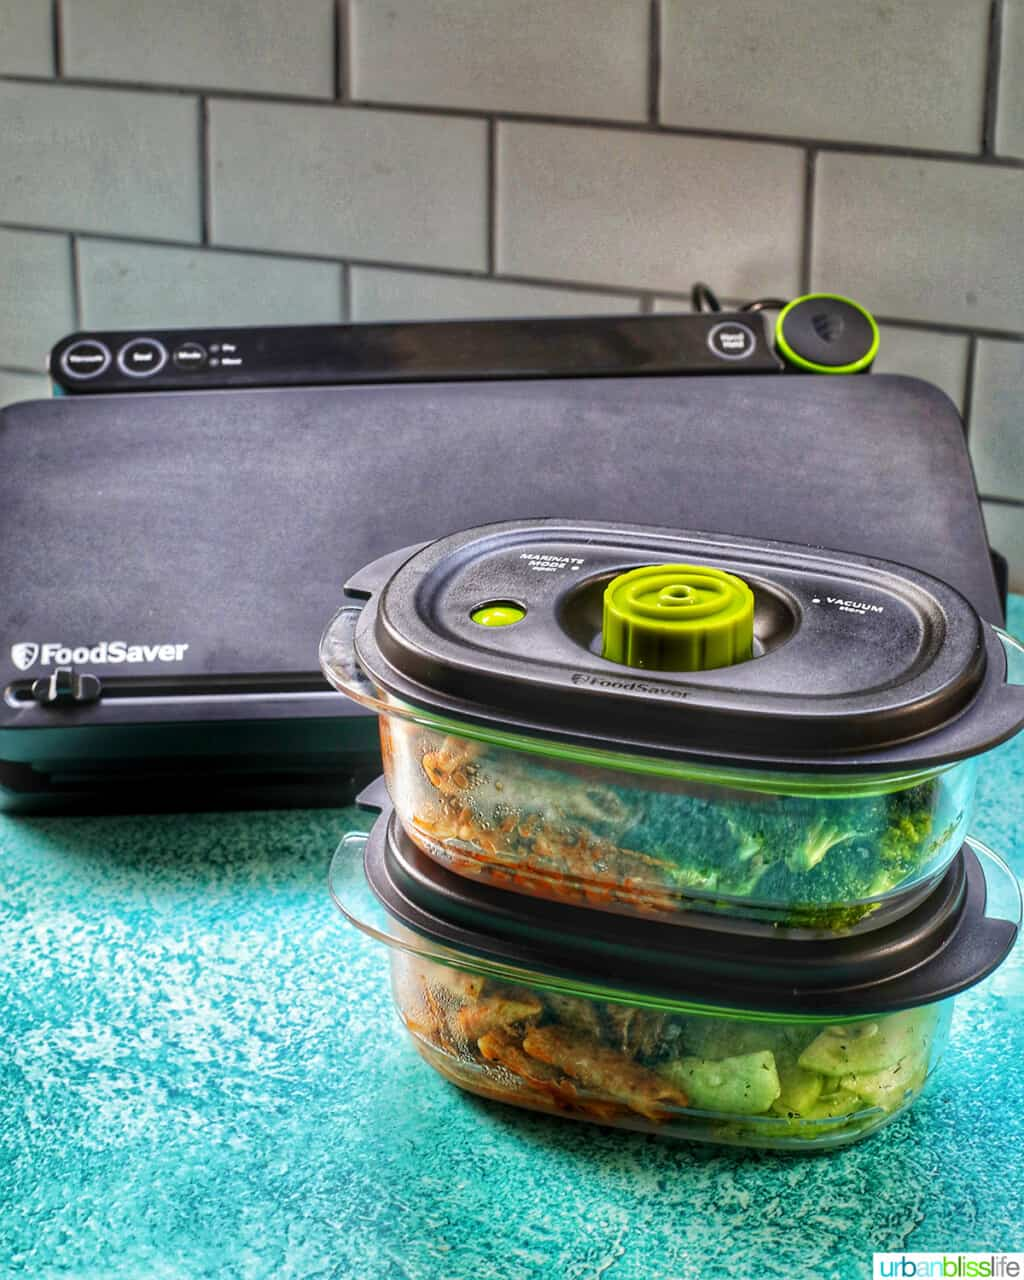 FoodSaver preserve and marinate containers and FoodSaver system